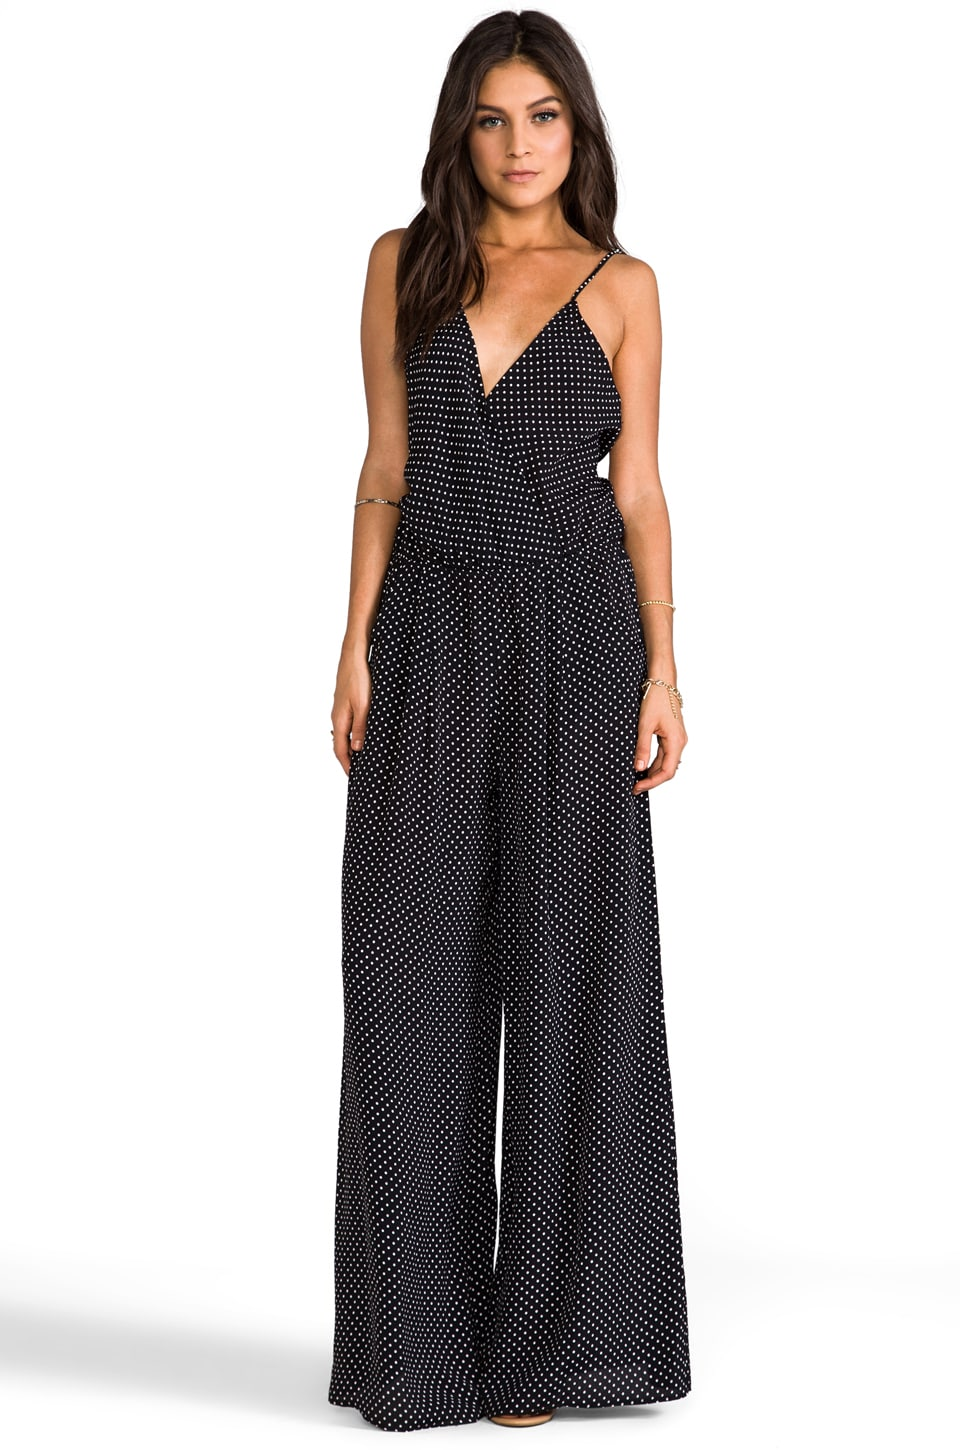 FLYNN SKYE Long Jumpsuit in Black Dot